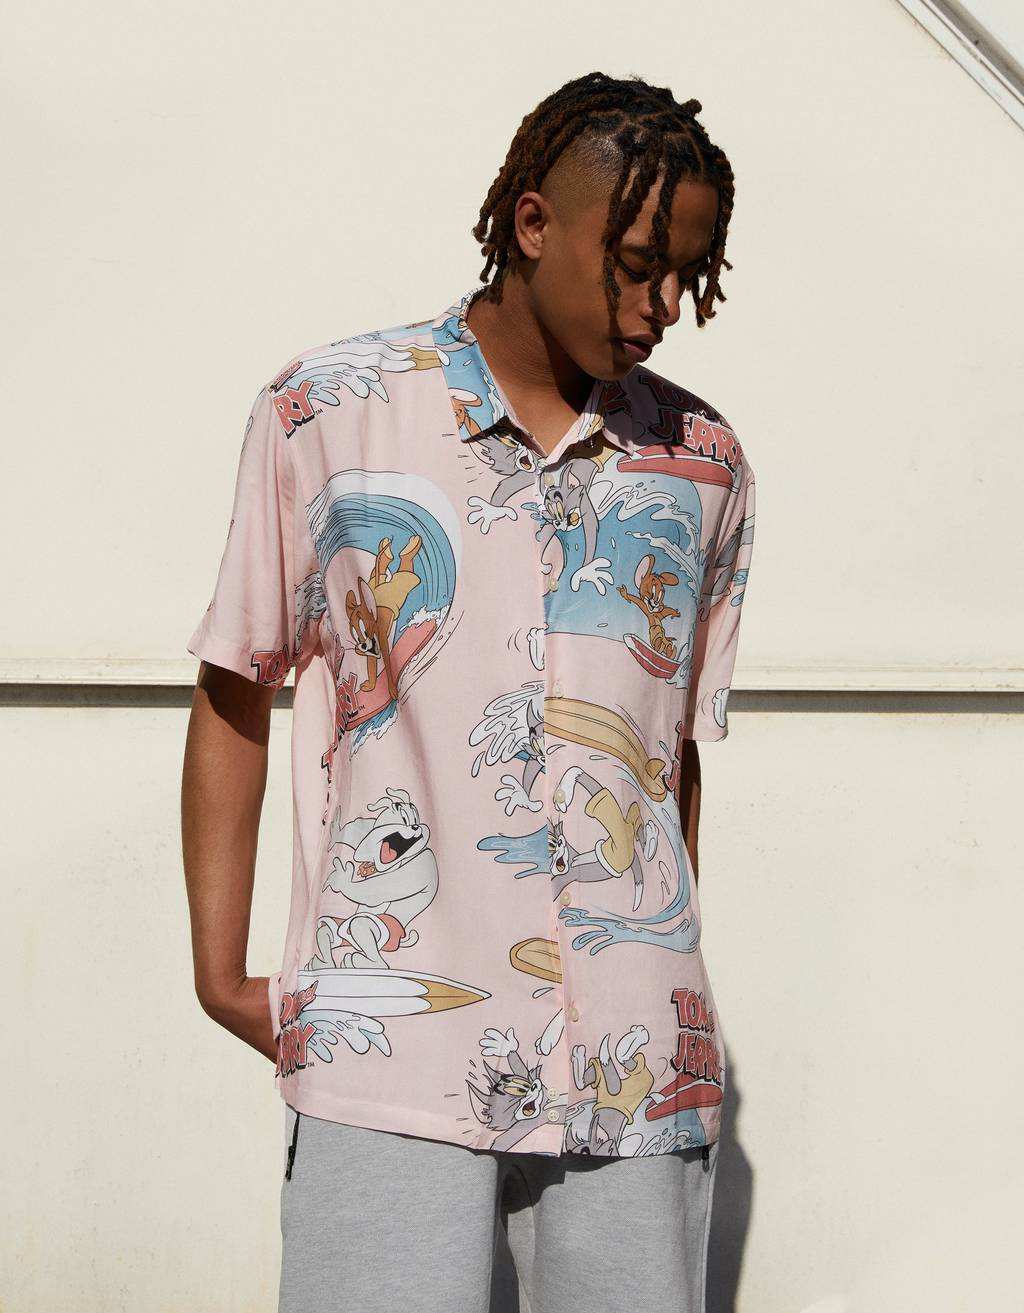 Tom & Jerry print shirt